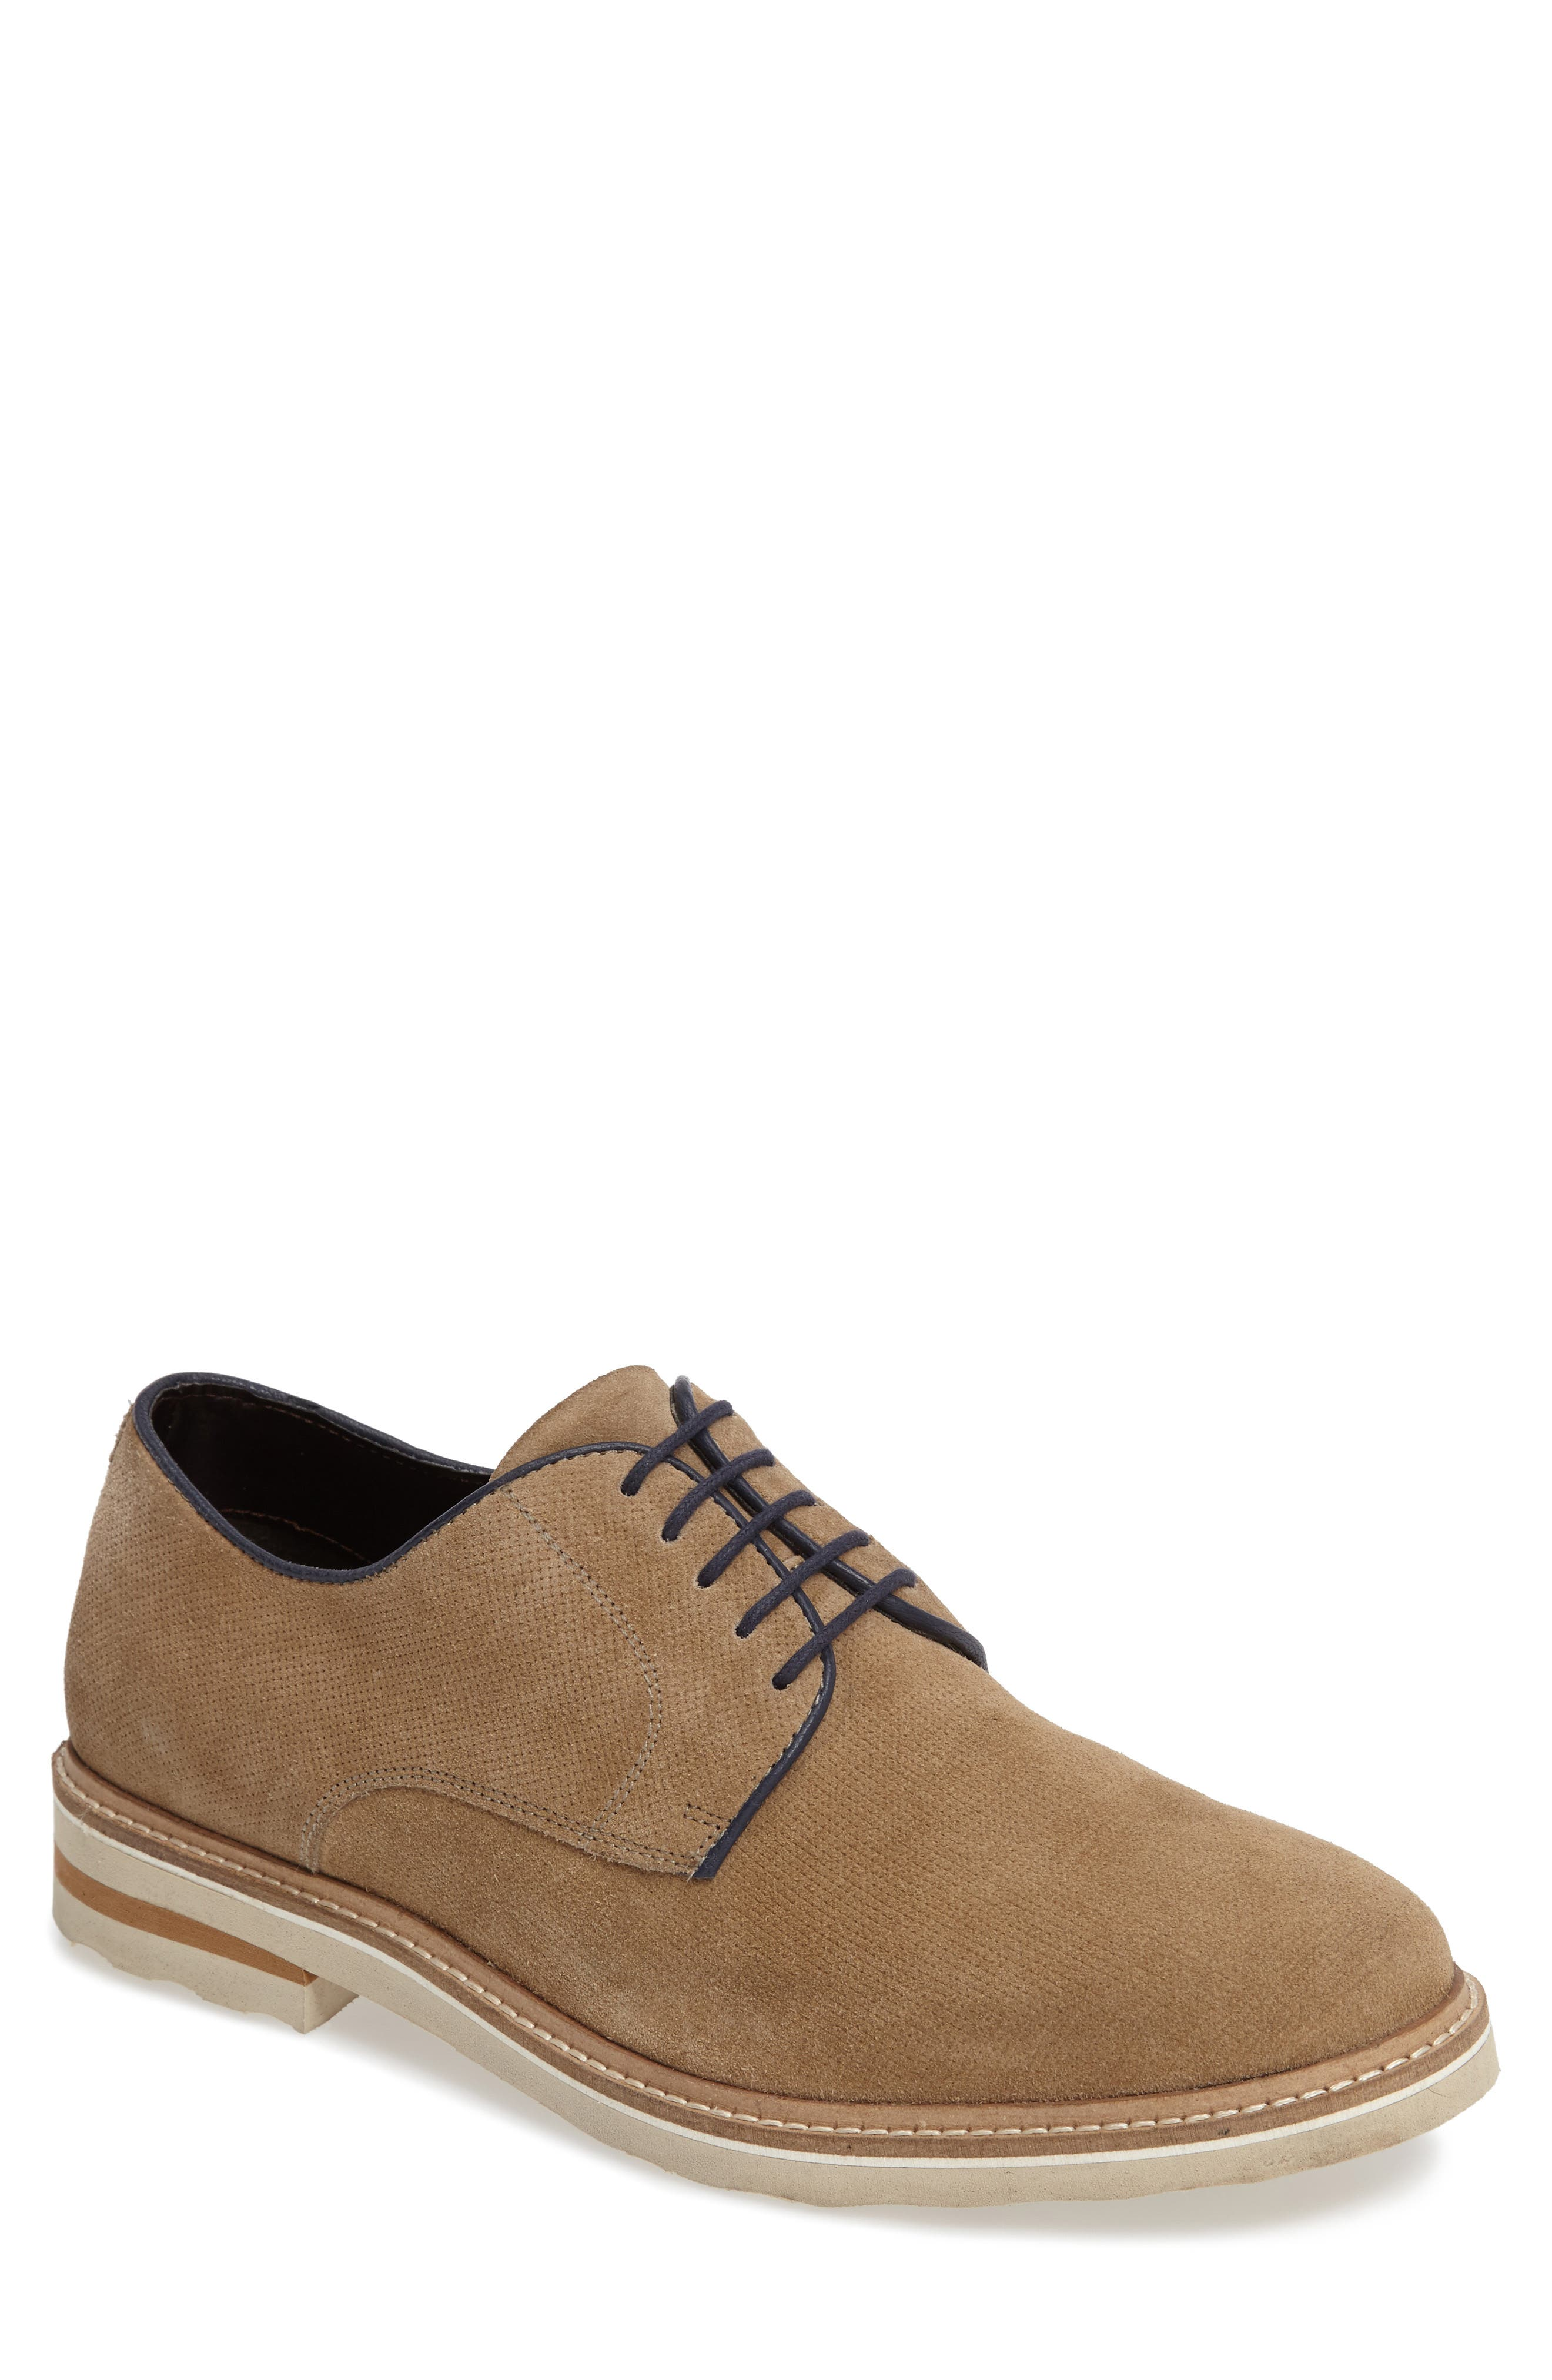 Steve Madden Horten Derby (Men)